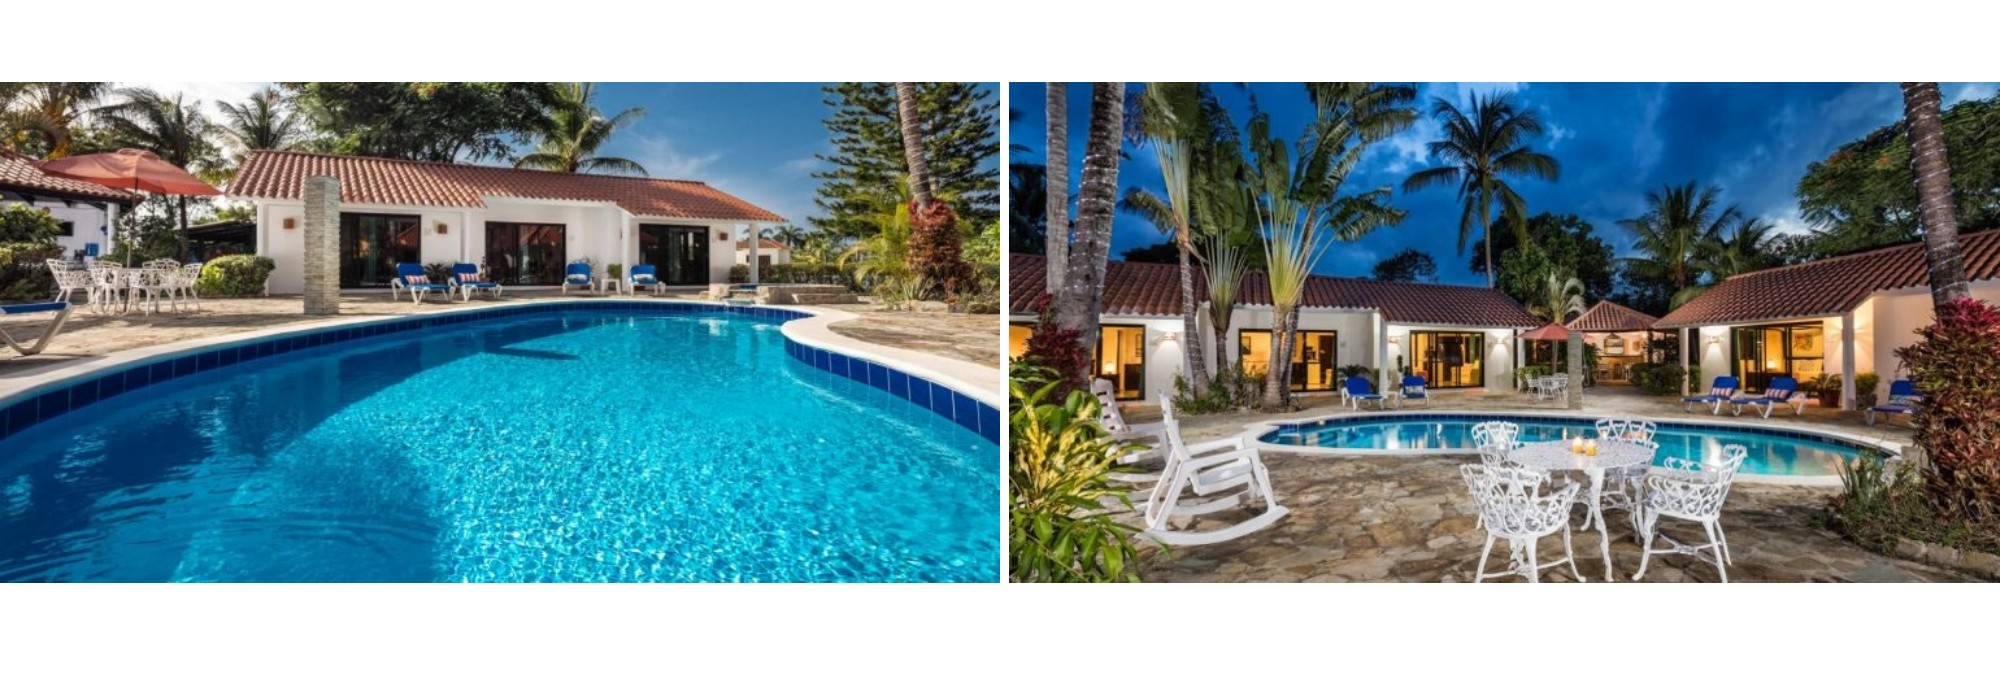 6 Unit B&B for Sale in the Dominican Republic Steps to Beach